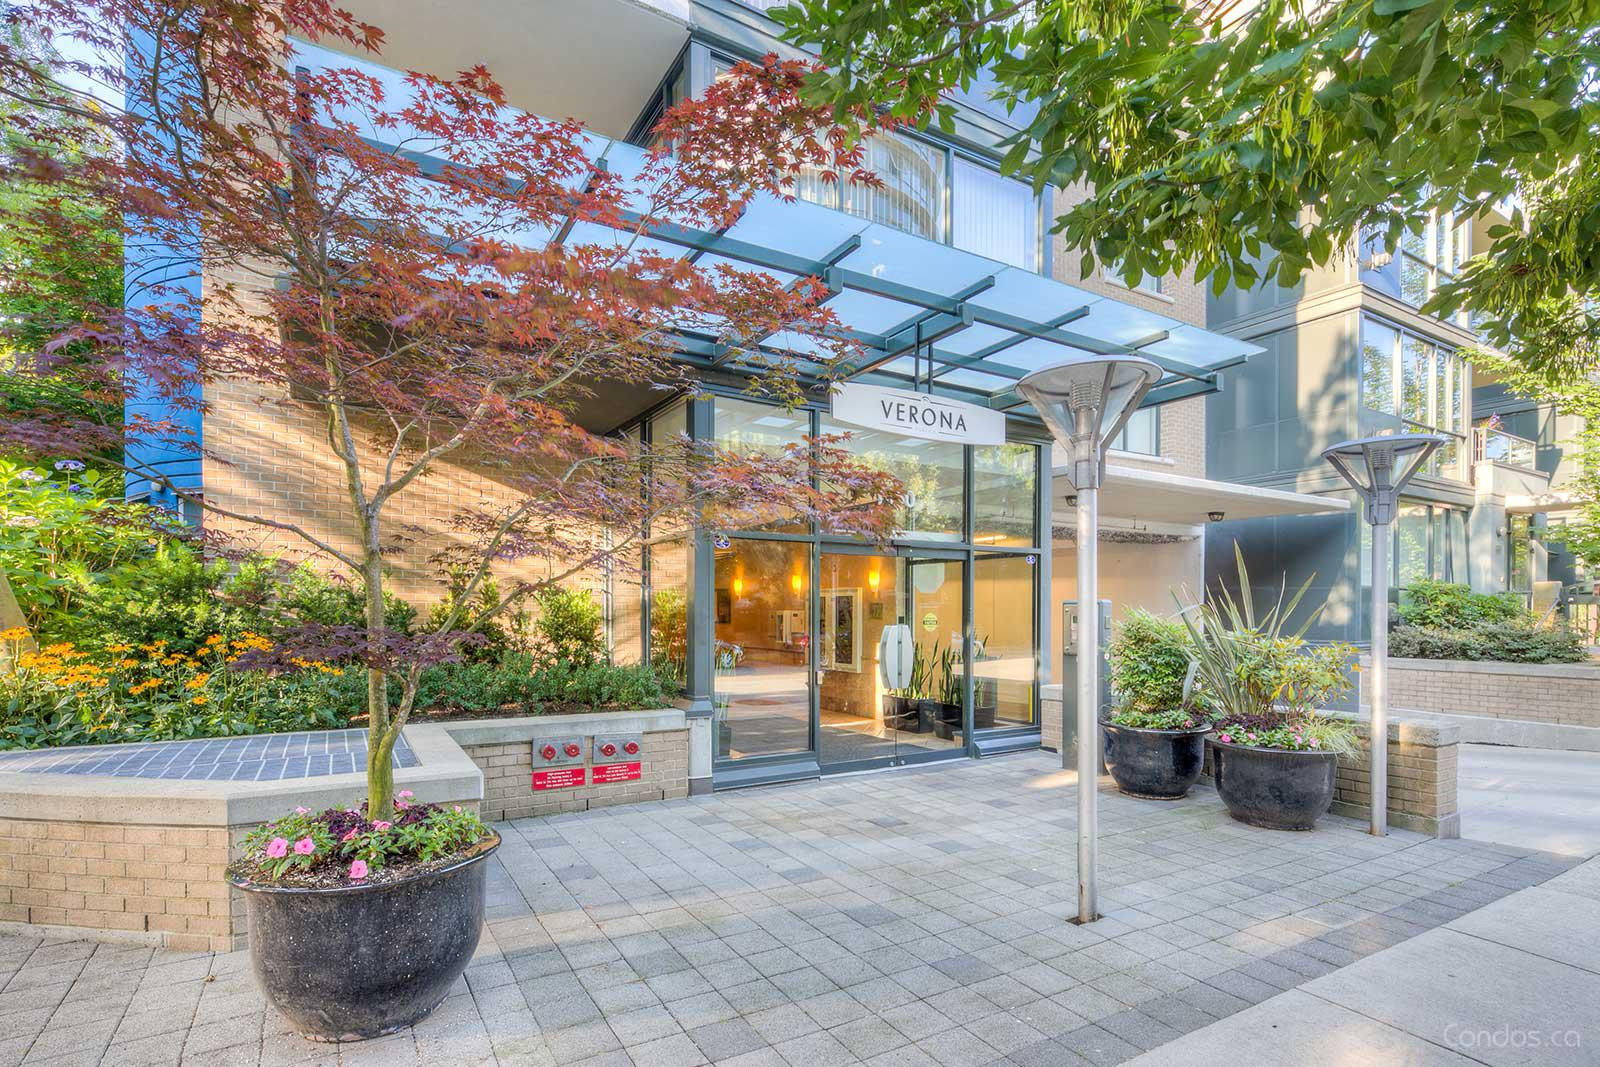 Verona of Portico at 1450 W 6th Ave, Vancouver 1